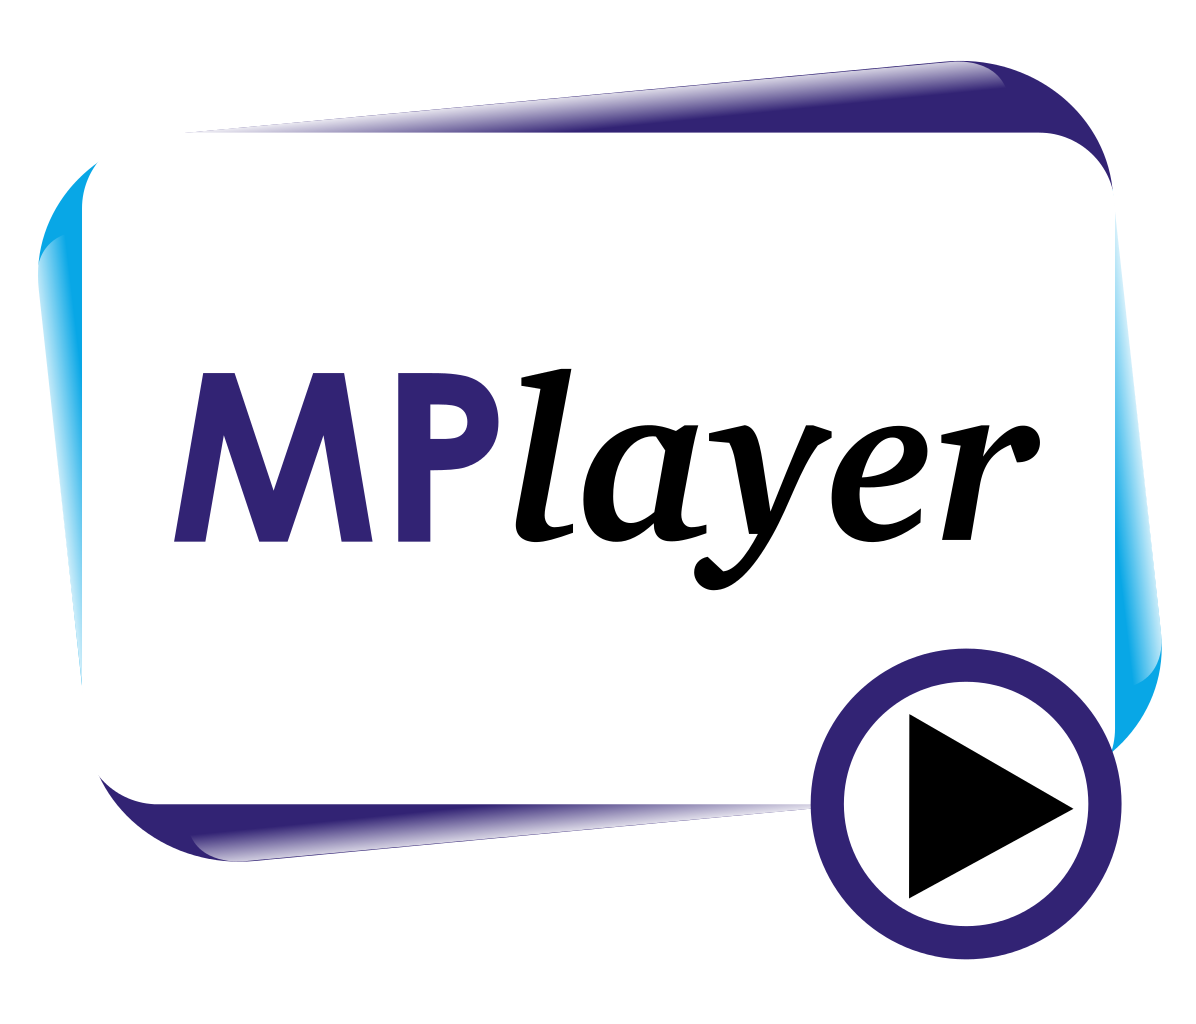 File:MPlayer.svg.